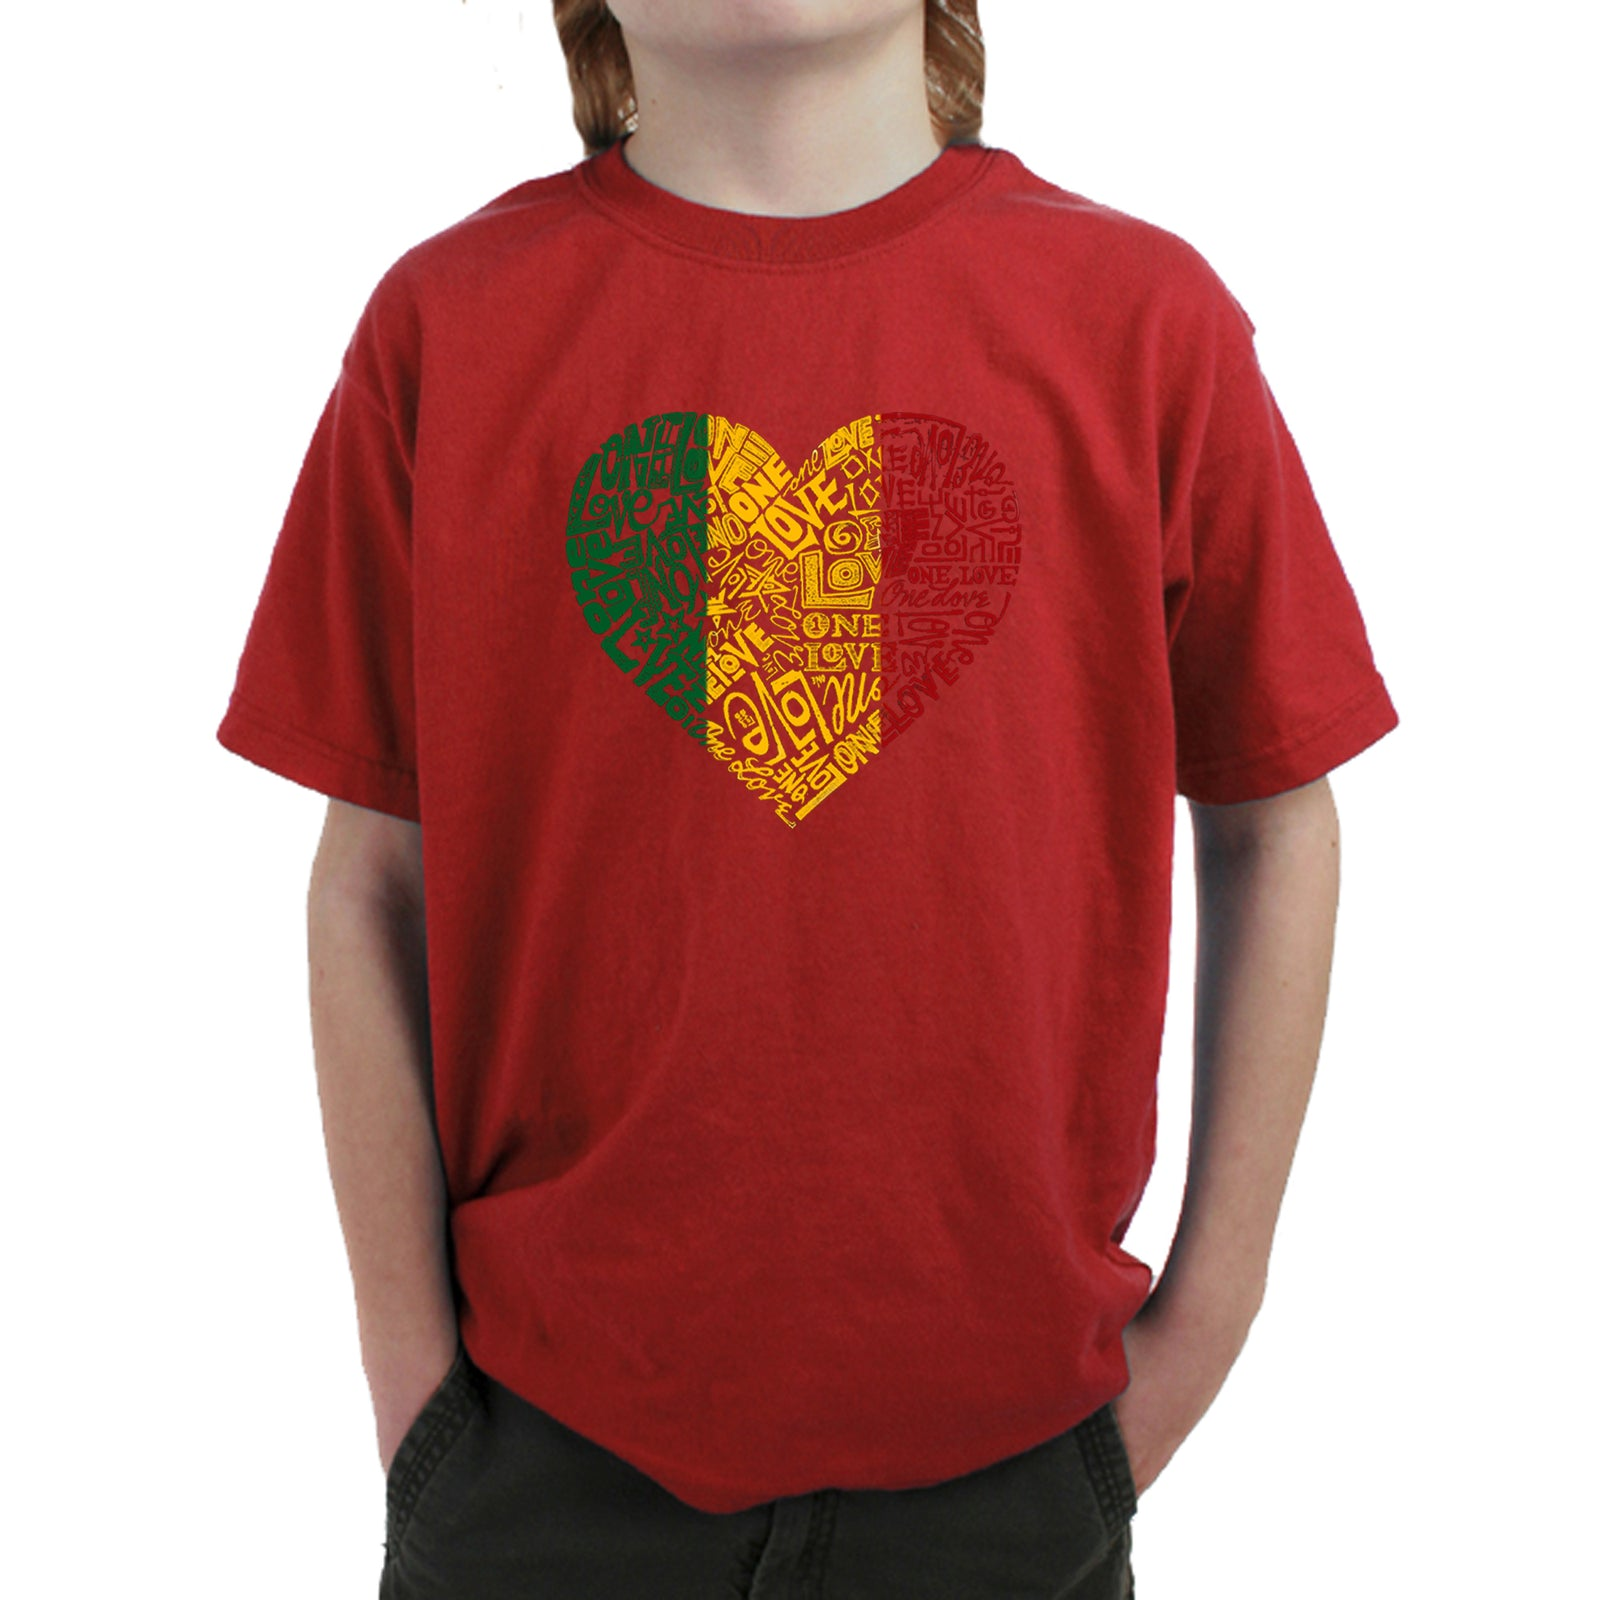 Boy's T-shirt - One Love Heart